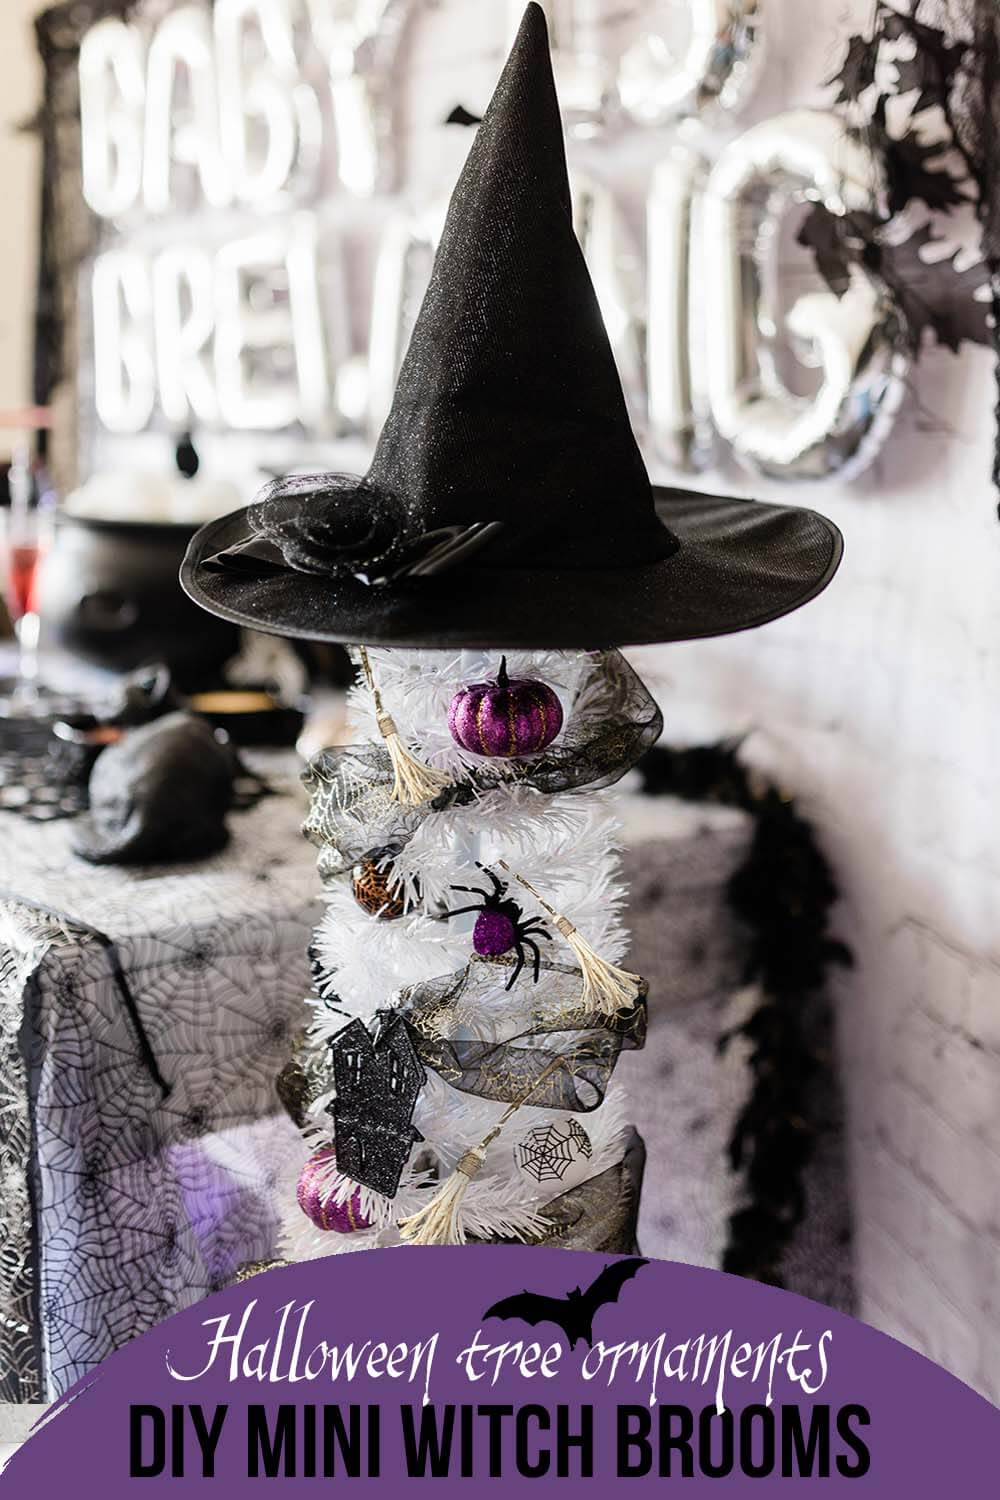 Halloween tree mini witch broom ornaments by Salt Lake Party Stylist